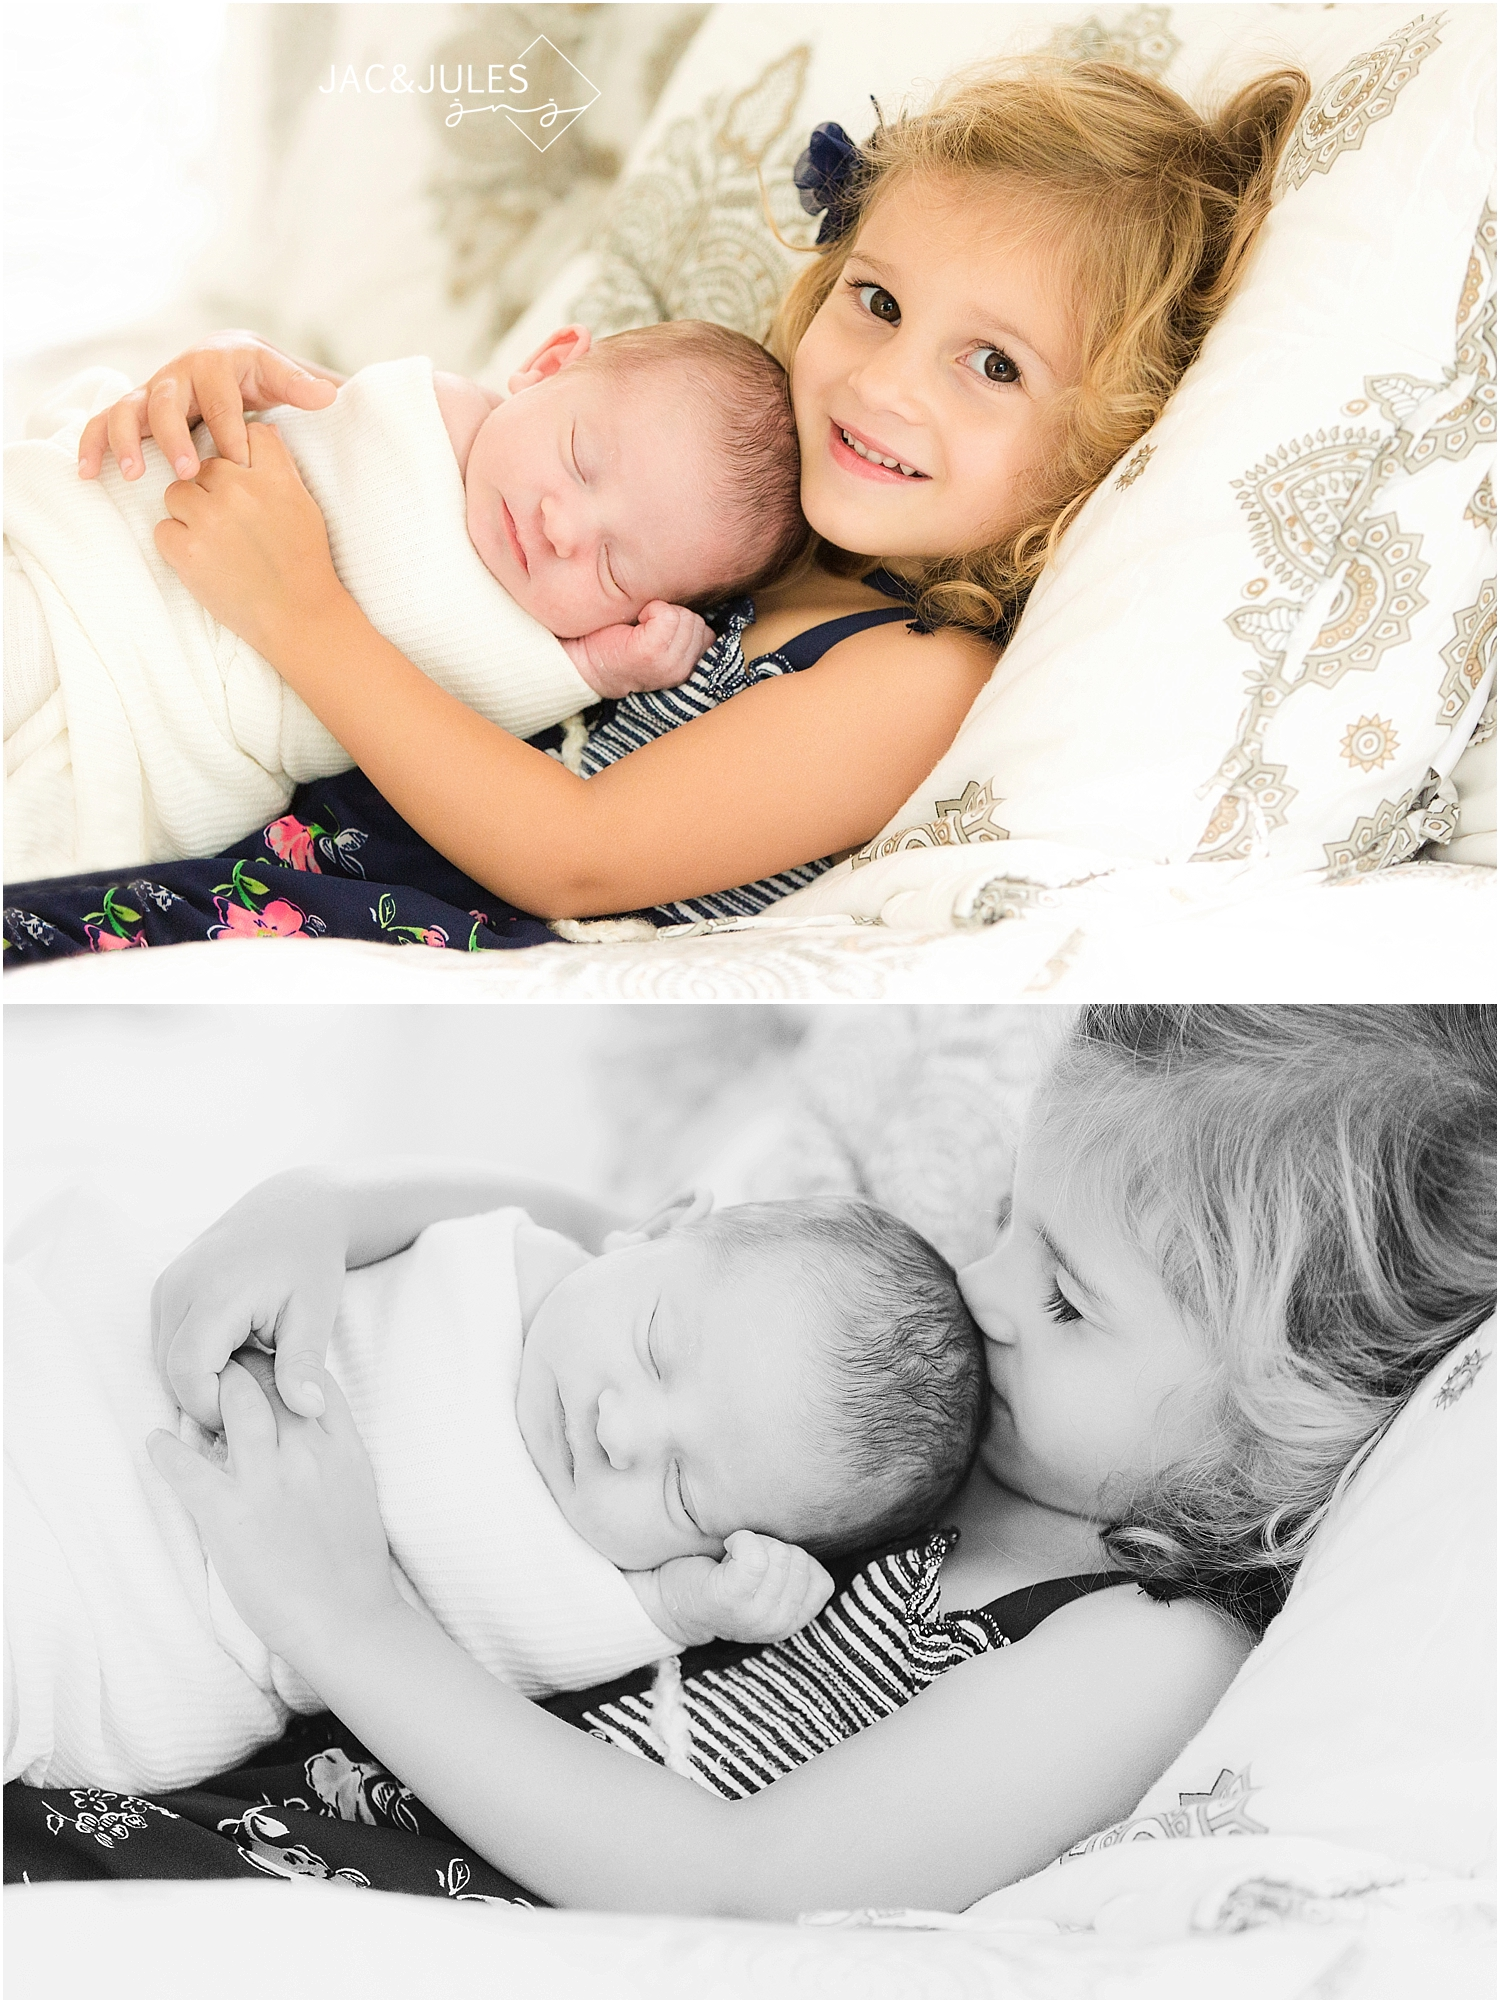 jacnjules takes a photo of a newborn baby girl and her big sister in Toms River, NJ